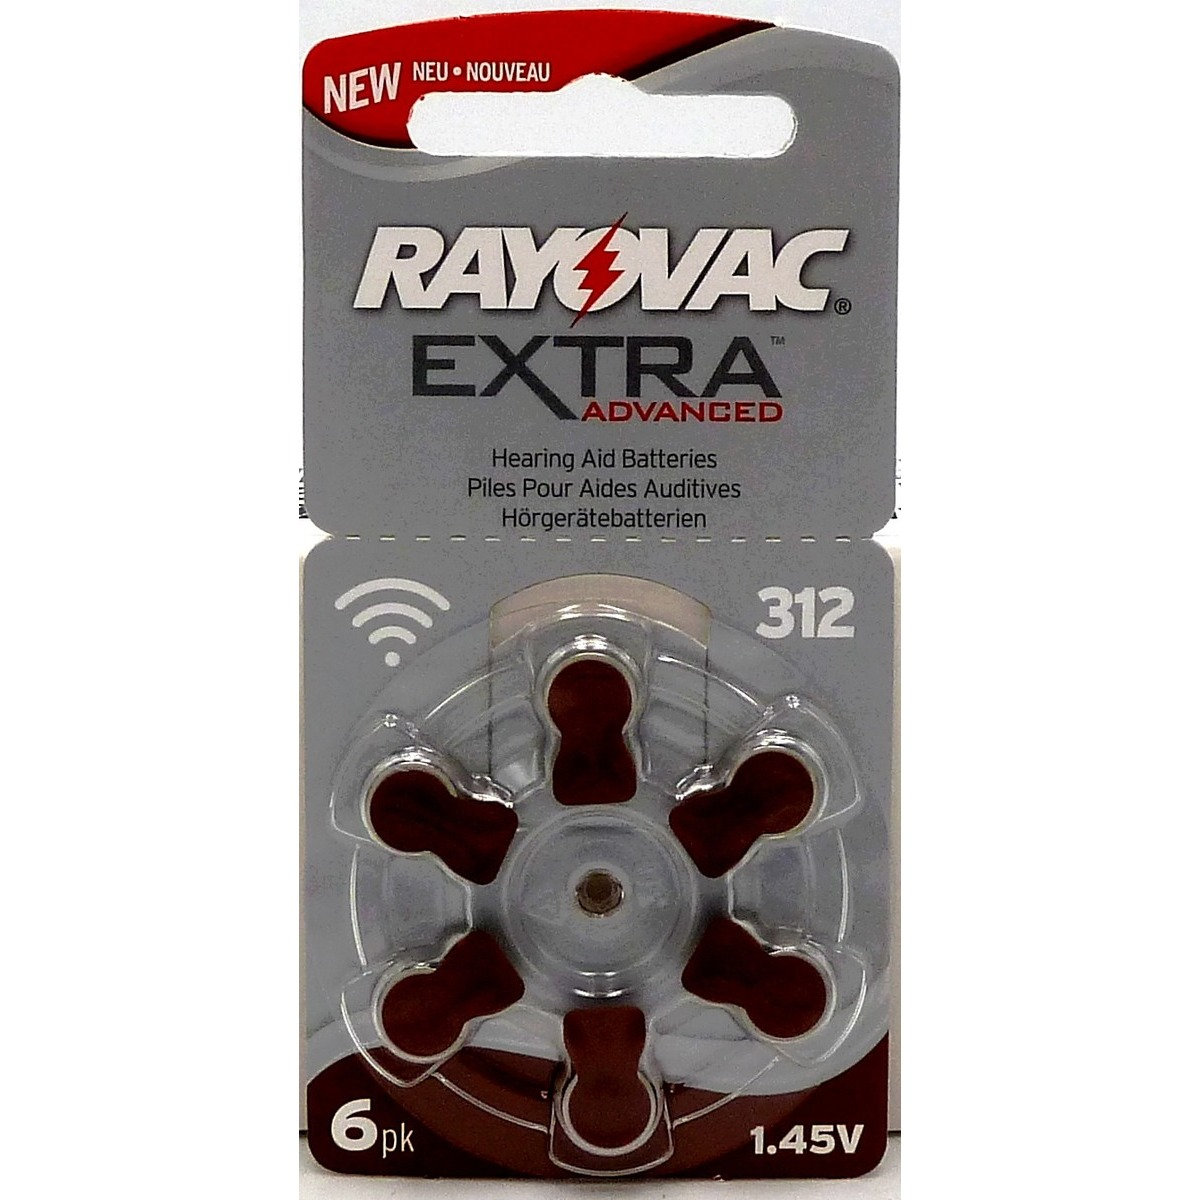 1 plaquette Rayovac Extra Advanced 312